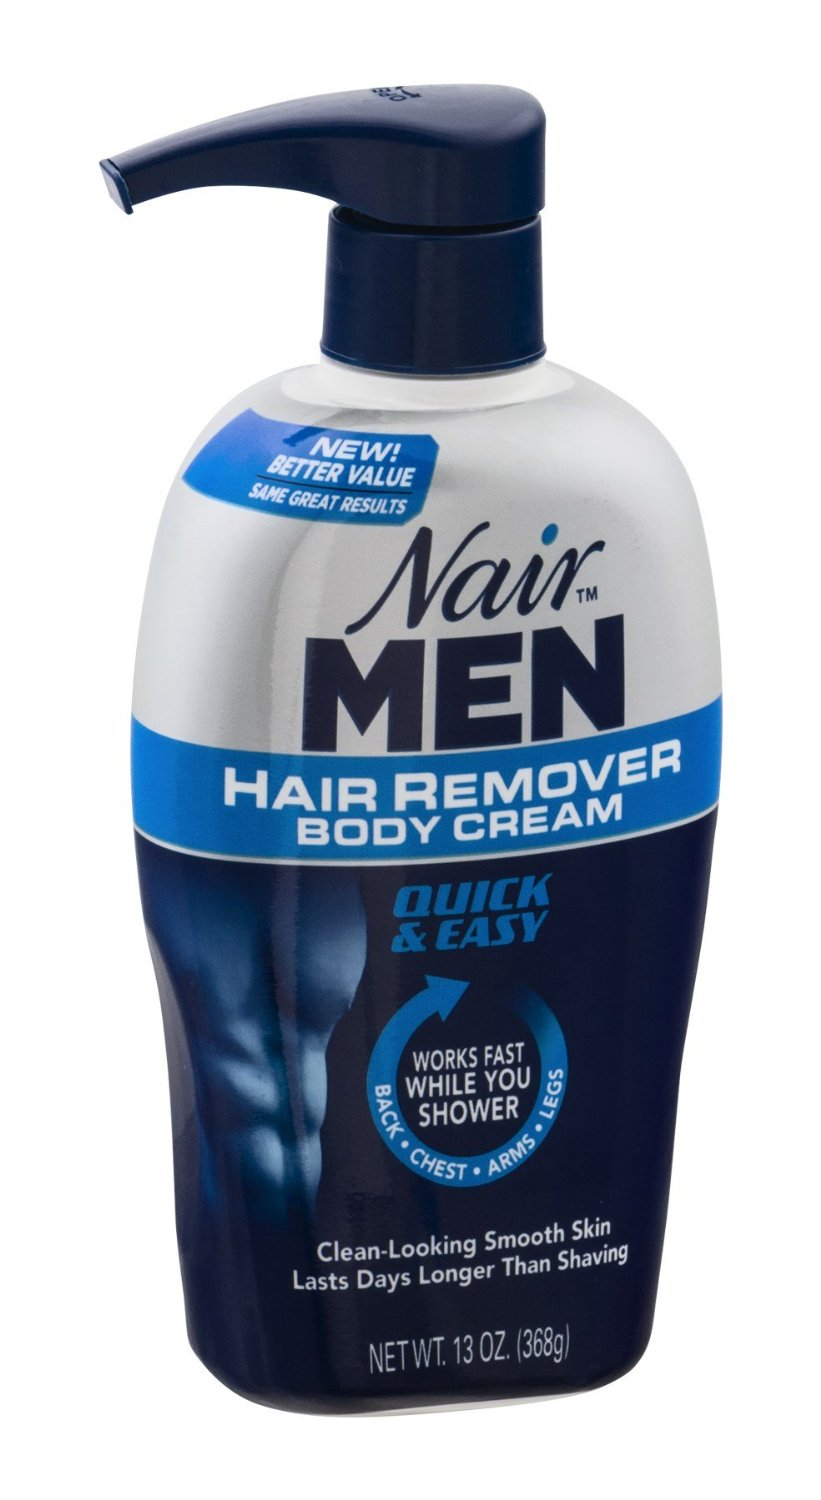 nair men hair remover body cream